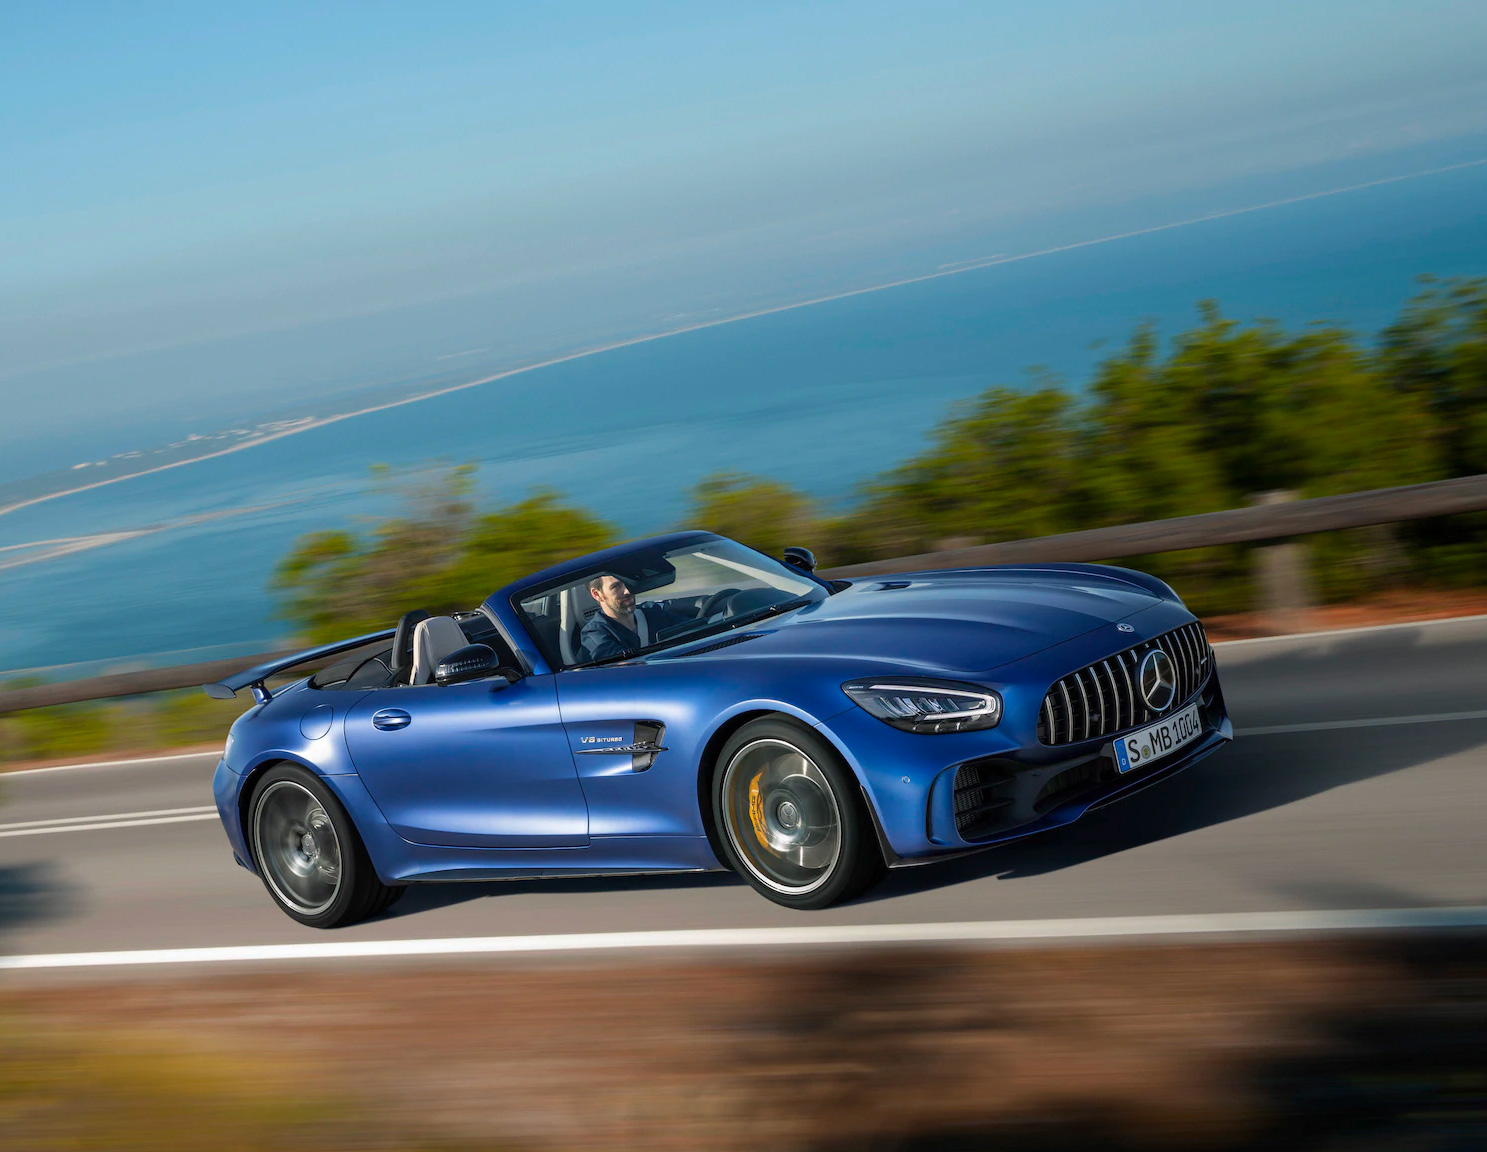 Mercedes Rolls Out Convertible AMG GT R Roadster at werd.com